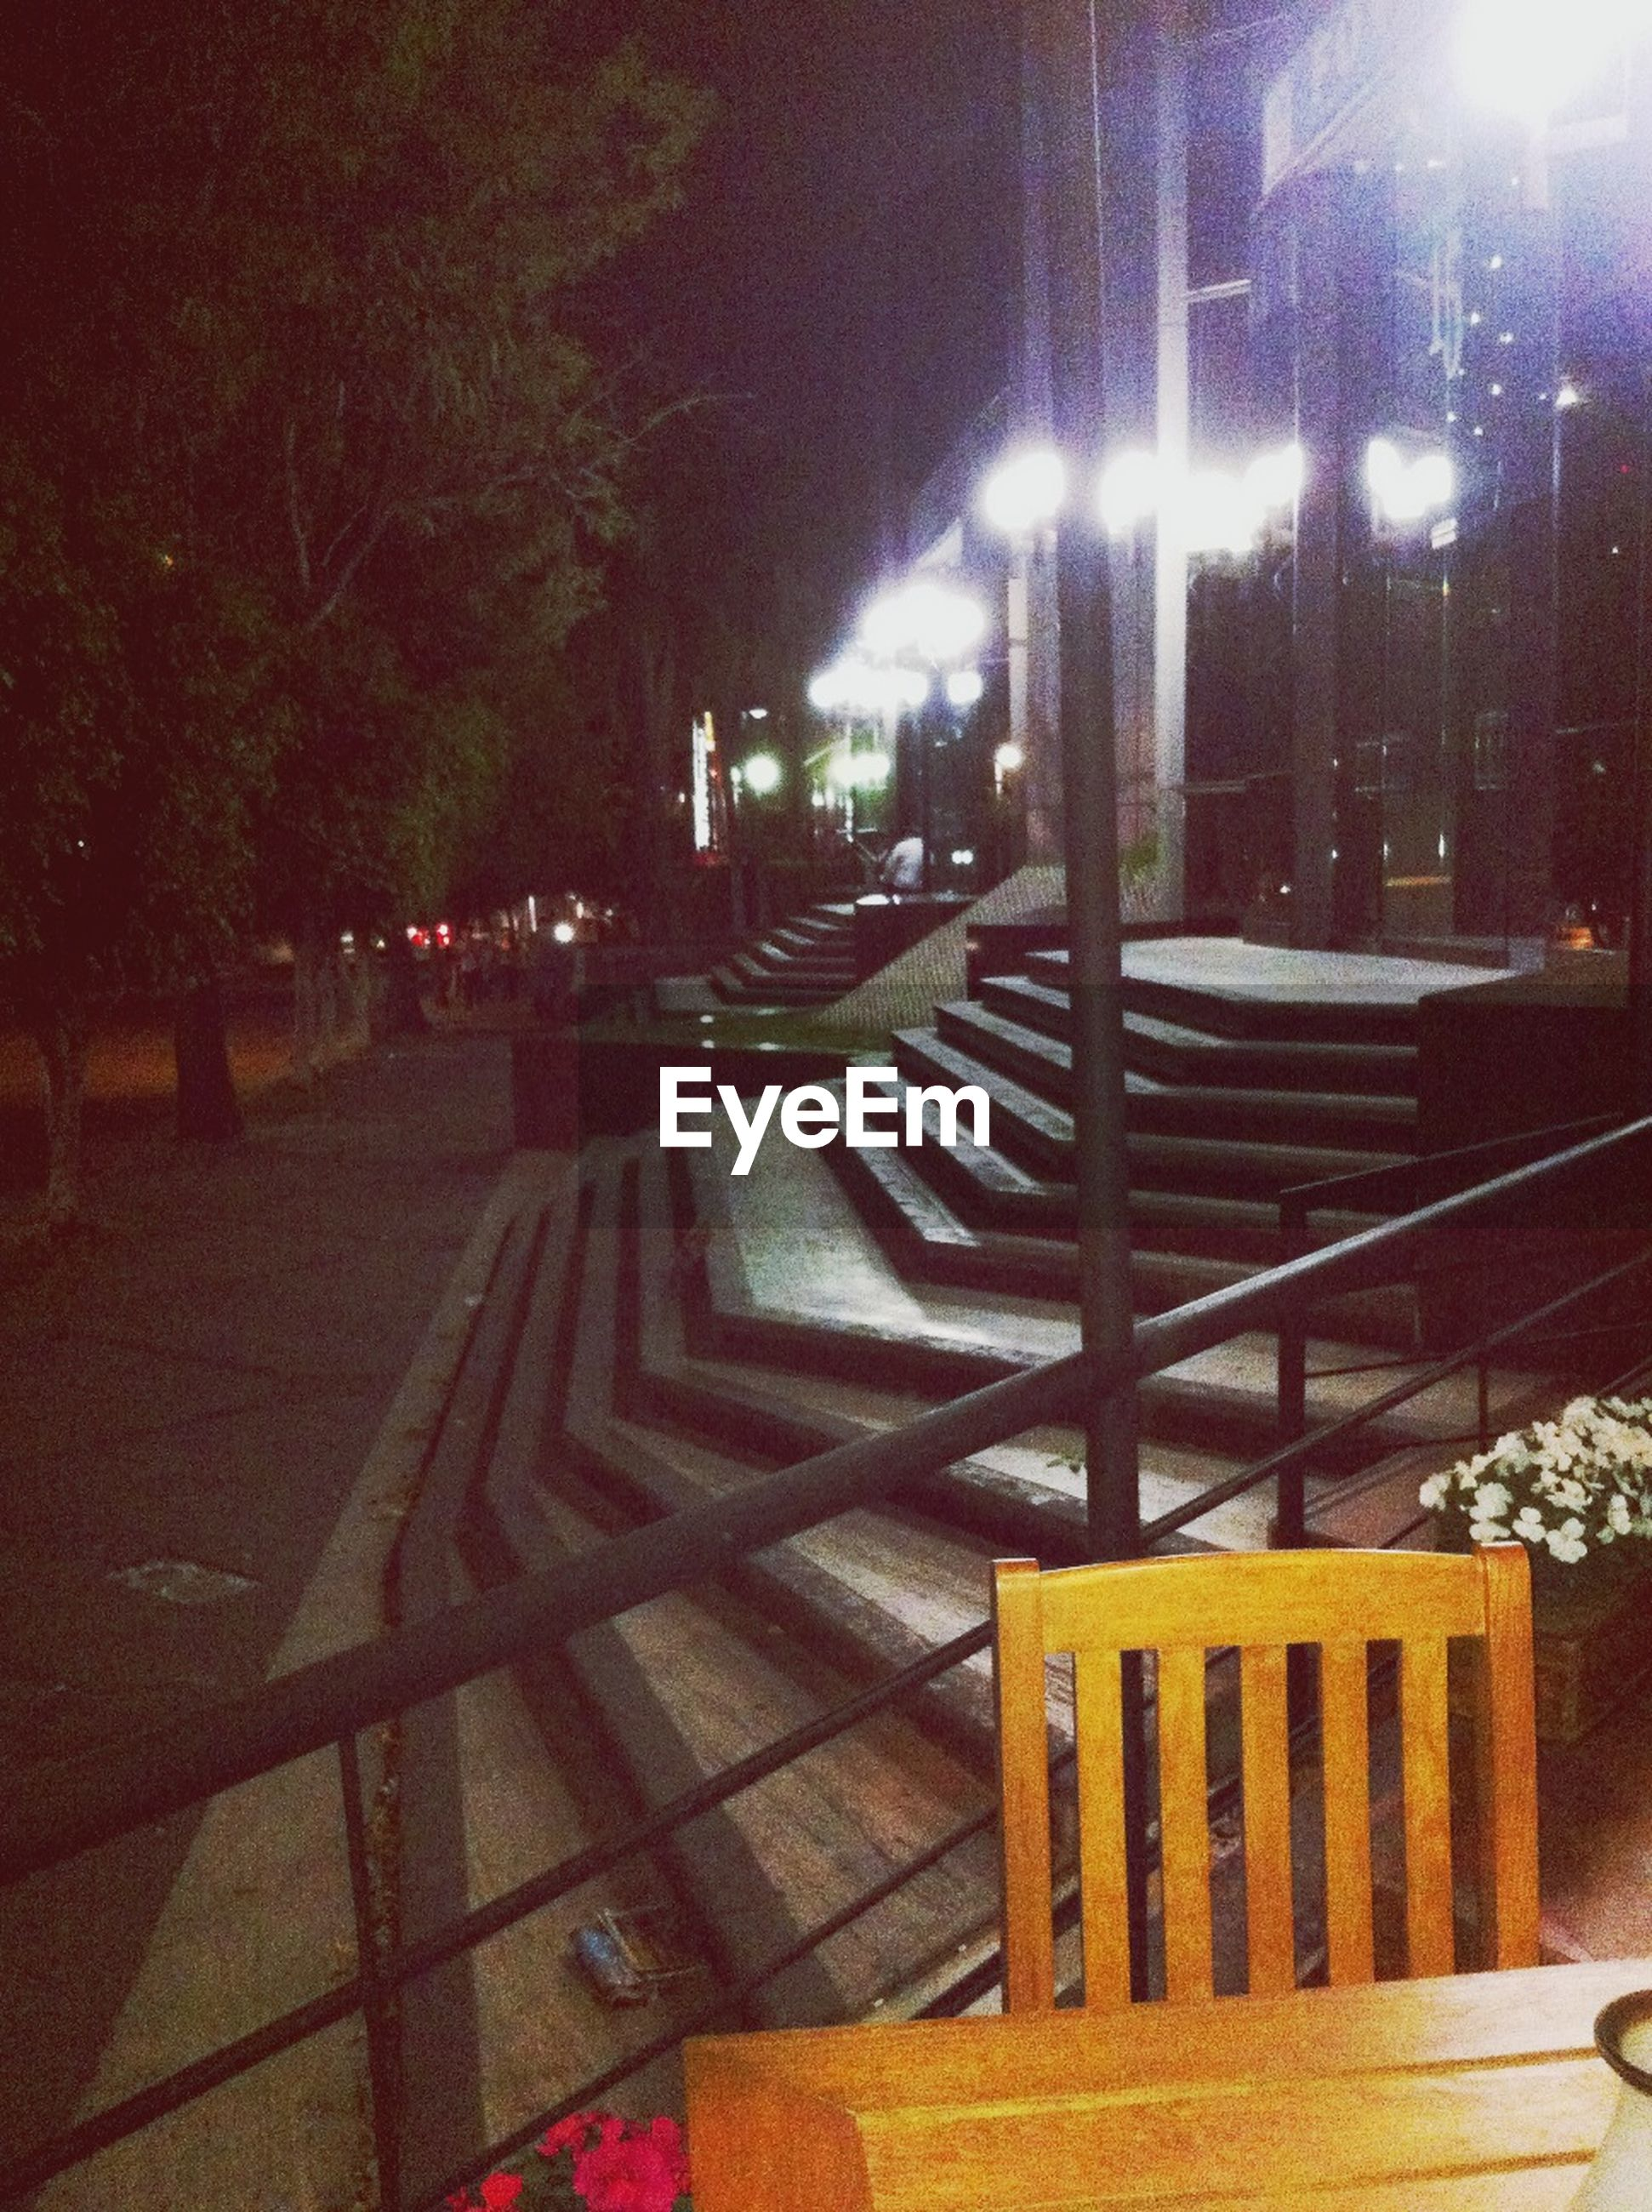 illuminated, night, empty, bench, absence, the way forward, lighting equipment, street light, railing, tree, seat, chair, no people, built structure, outdoors, city, transportation, high angle view, shadow, in a row